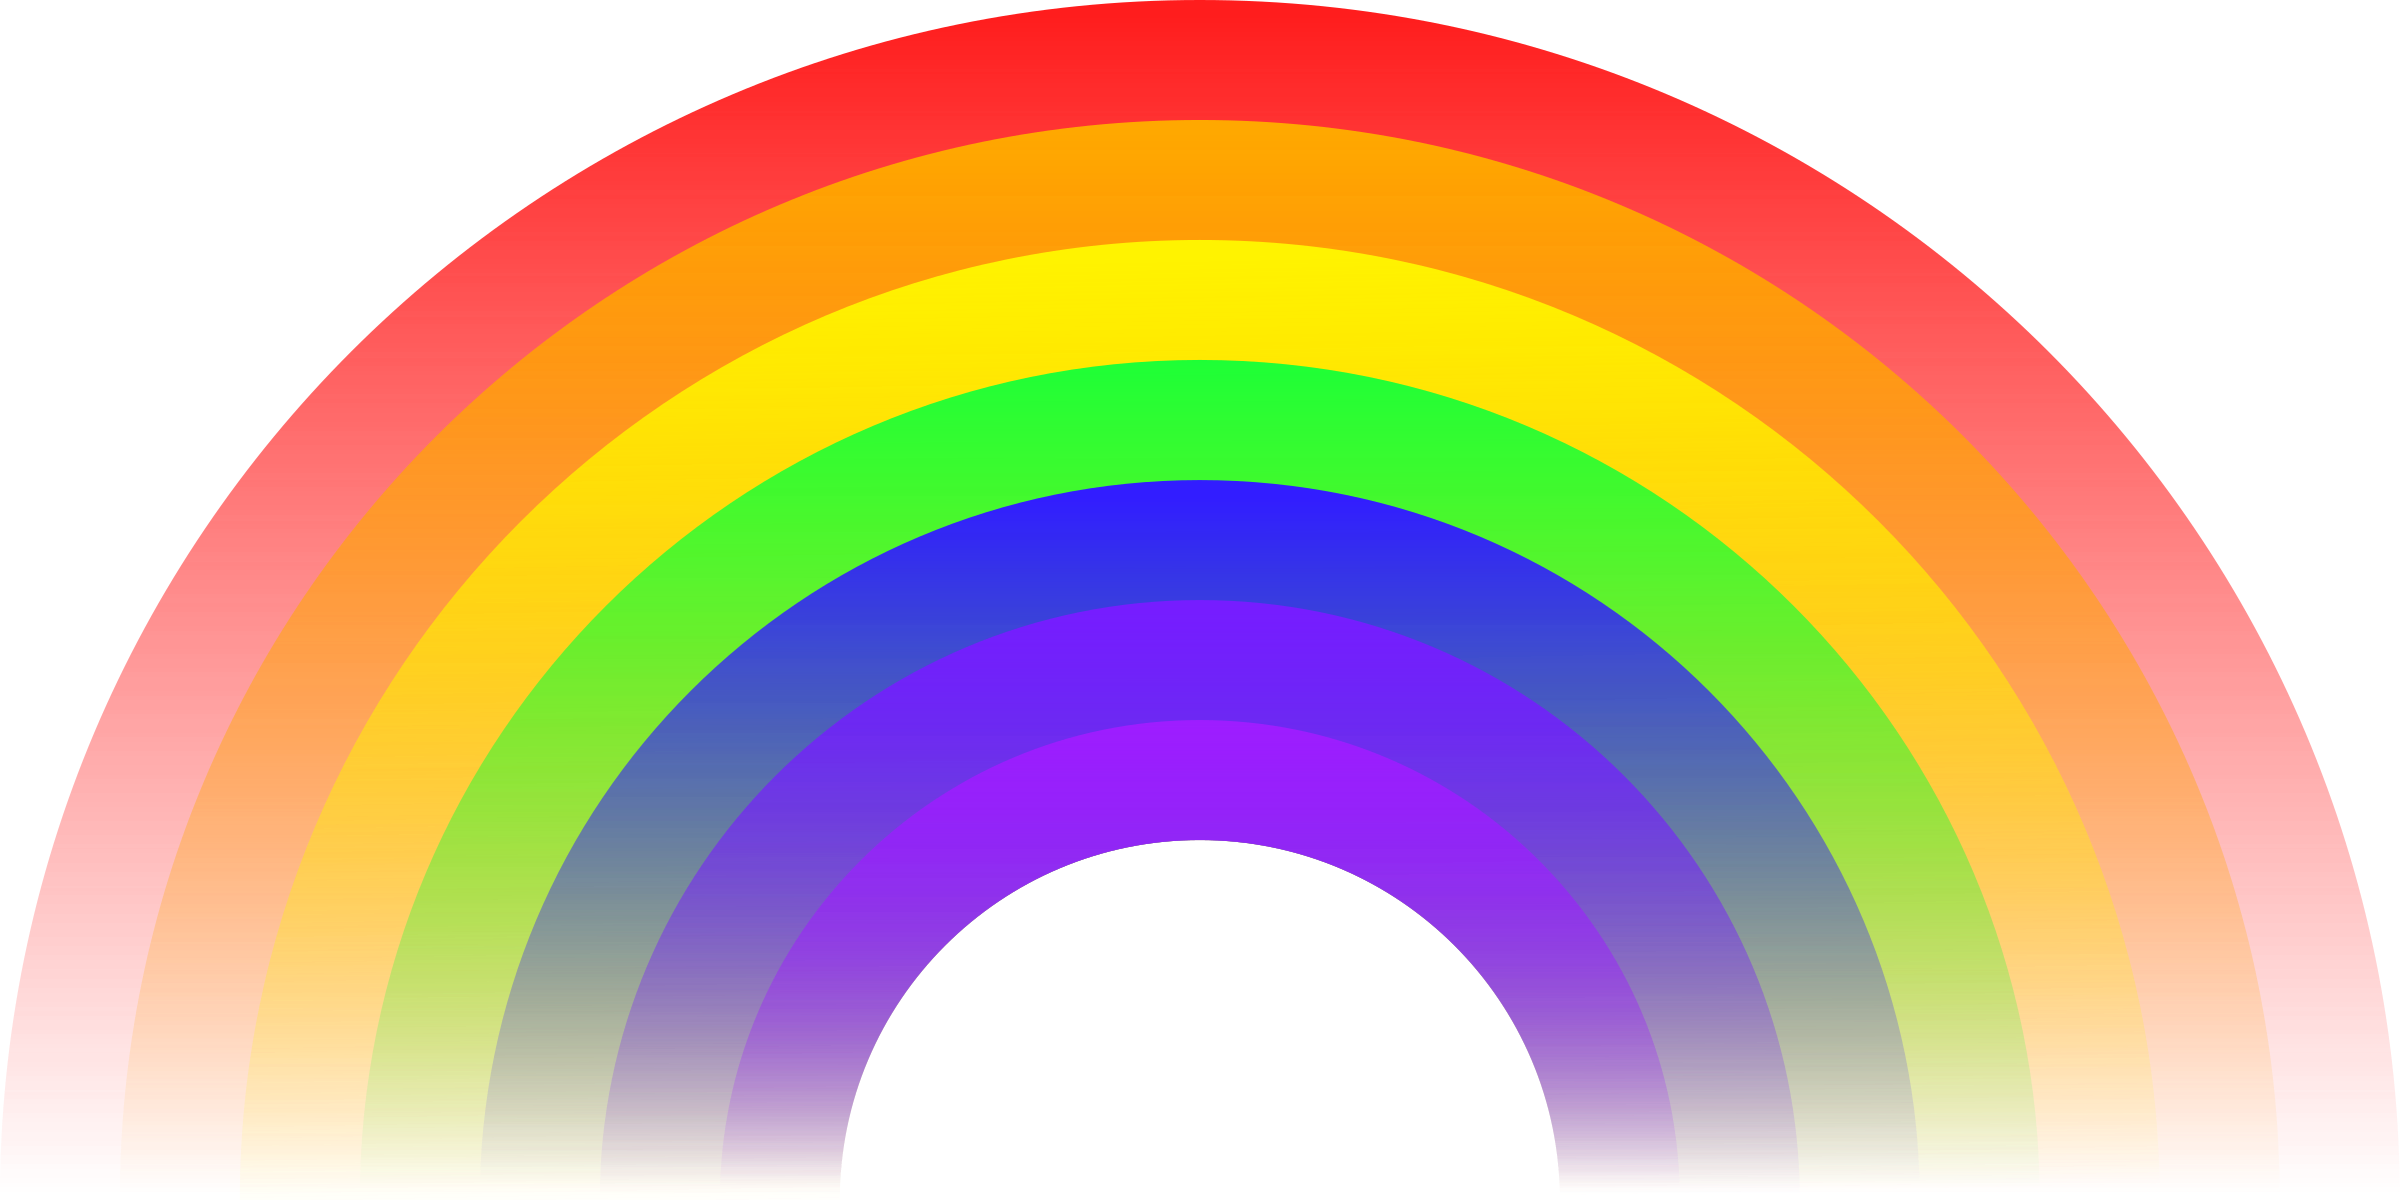 Rainbow gradient png. Transparent pictures free icons